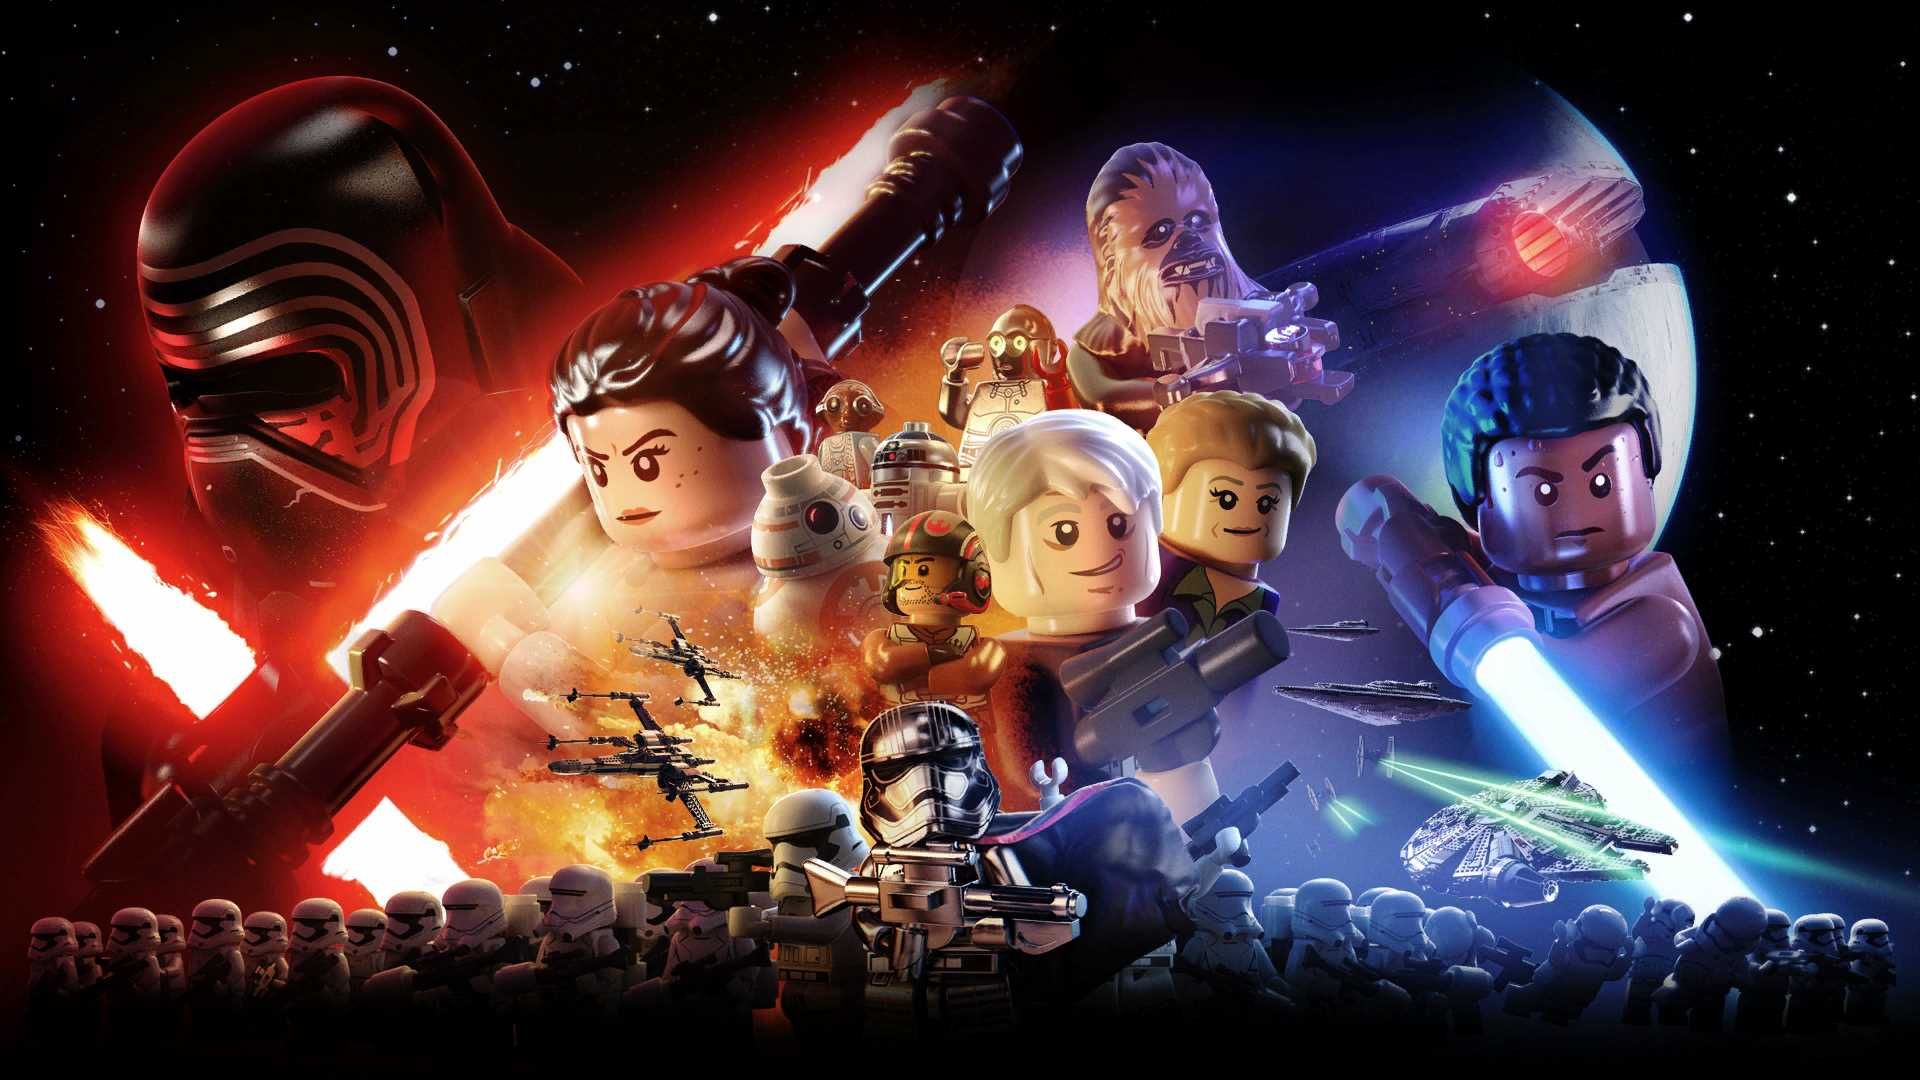 Looks Like Theres A New Lego Star Wars Game On The Way Nintendo Life